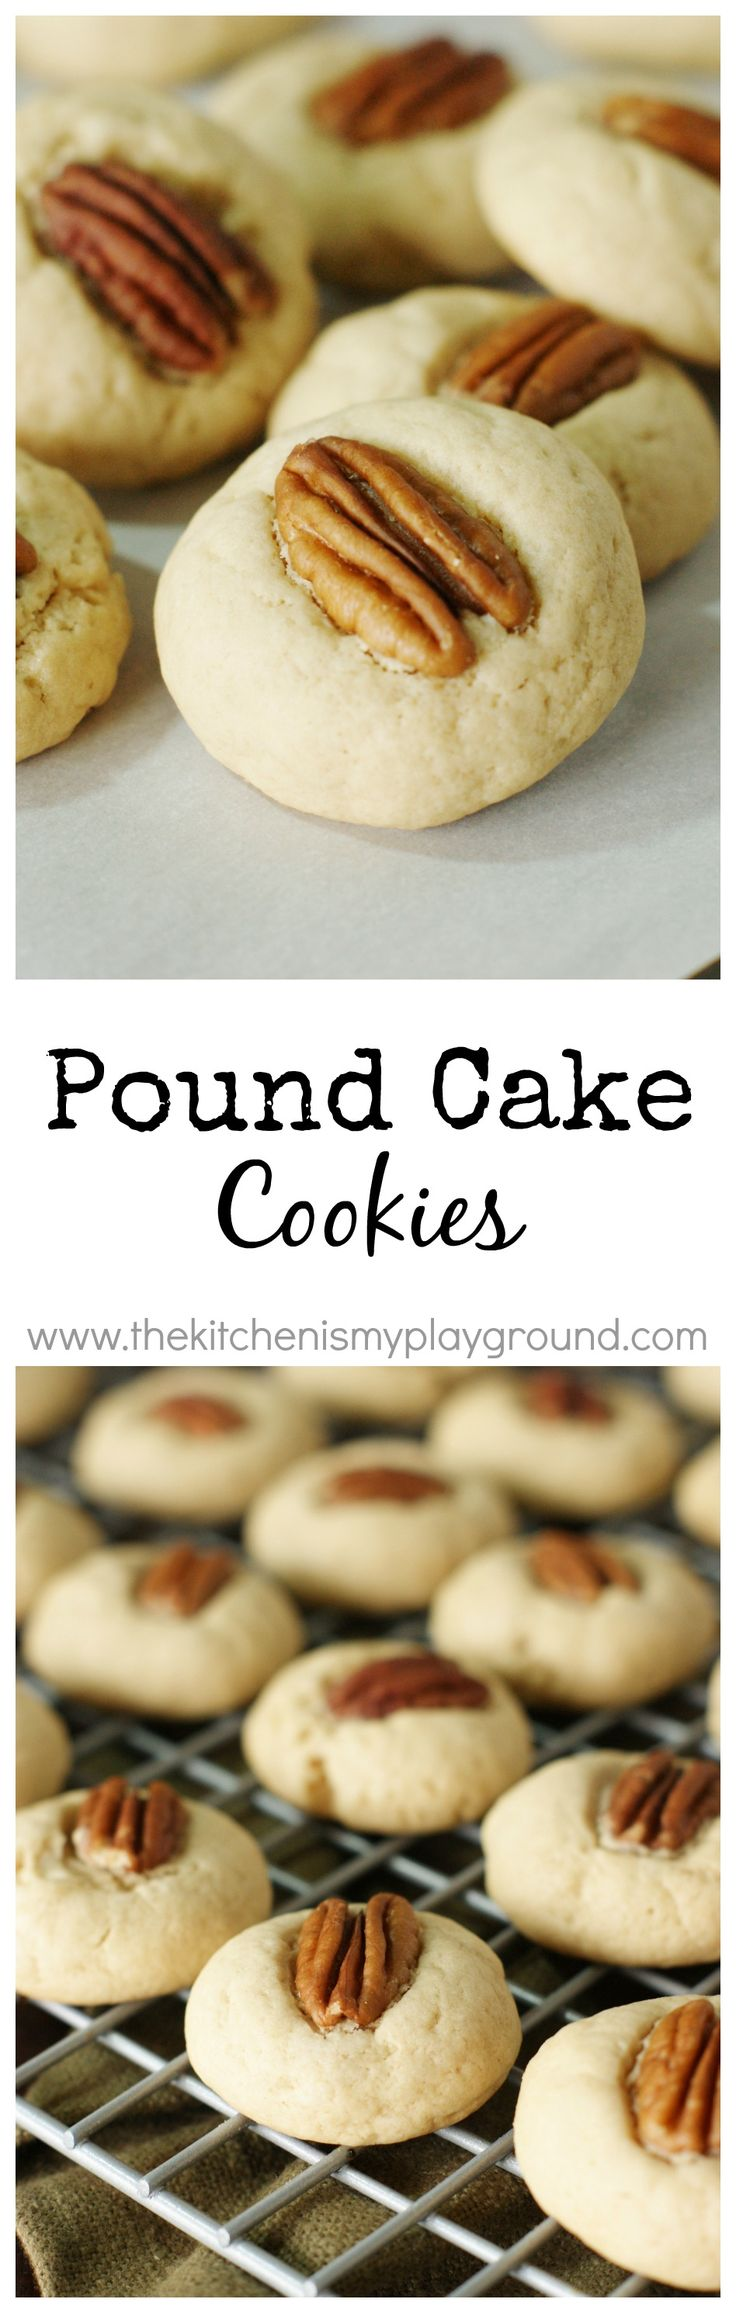 Pound Cake Cookies ~ Enjoy the tender texture & flavor of cream cheese pound cake in bite-sized form with these tasty little cookies! www.thekitchenismyplayground.com